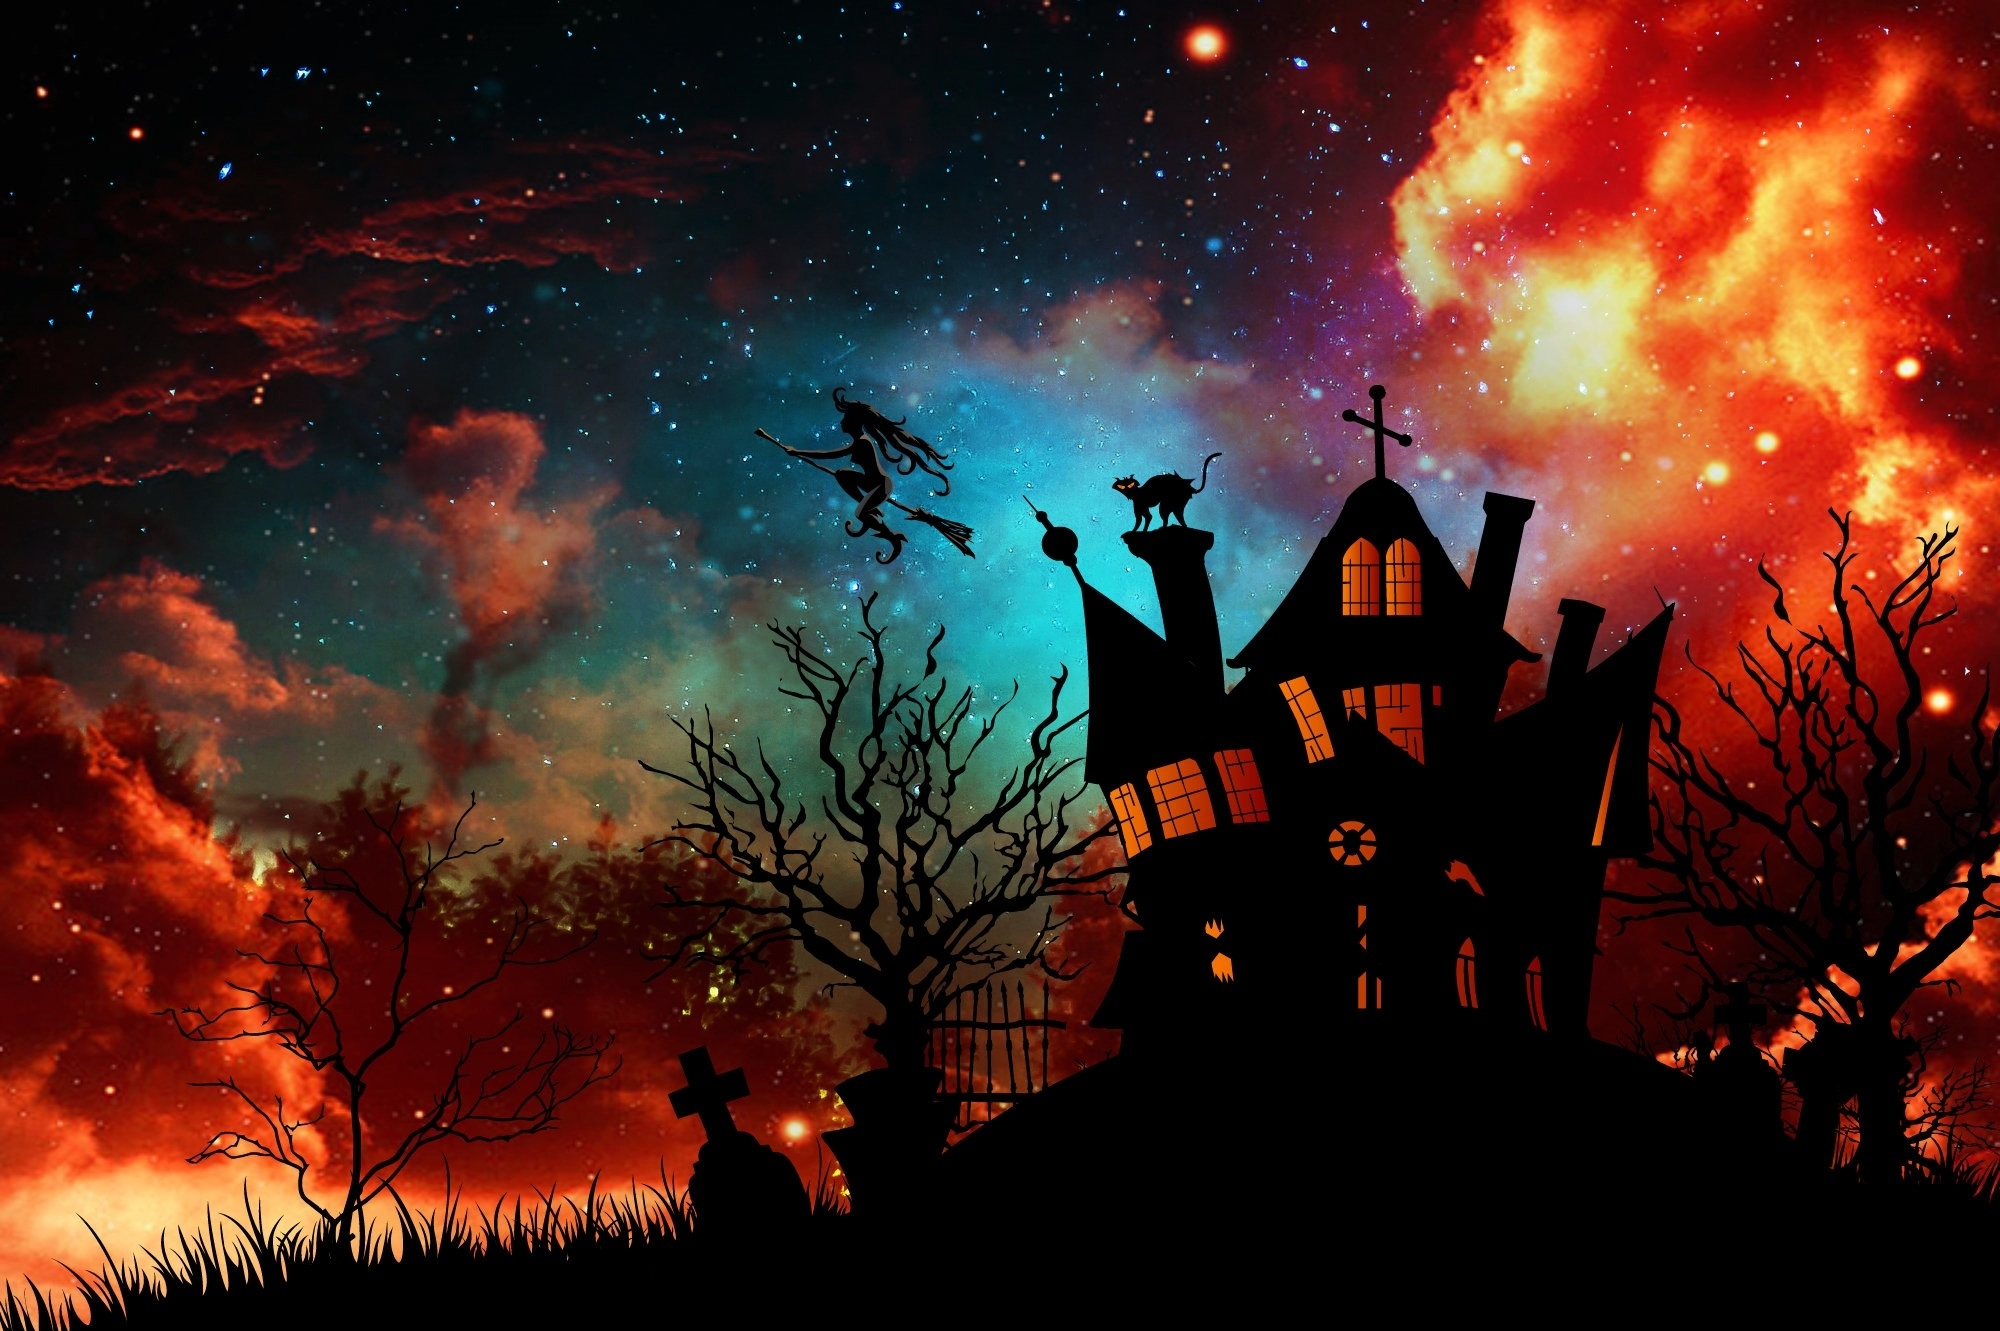 Illustration of witch's house from Grimm brothers fairytale The Musicians of Bremen